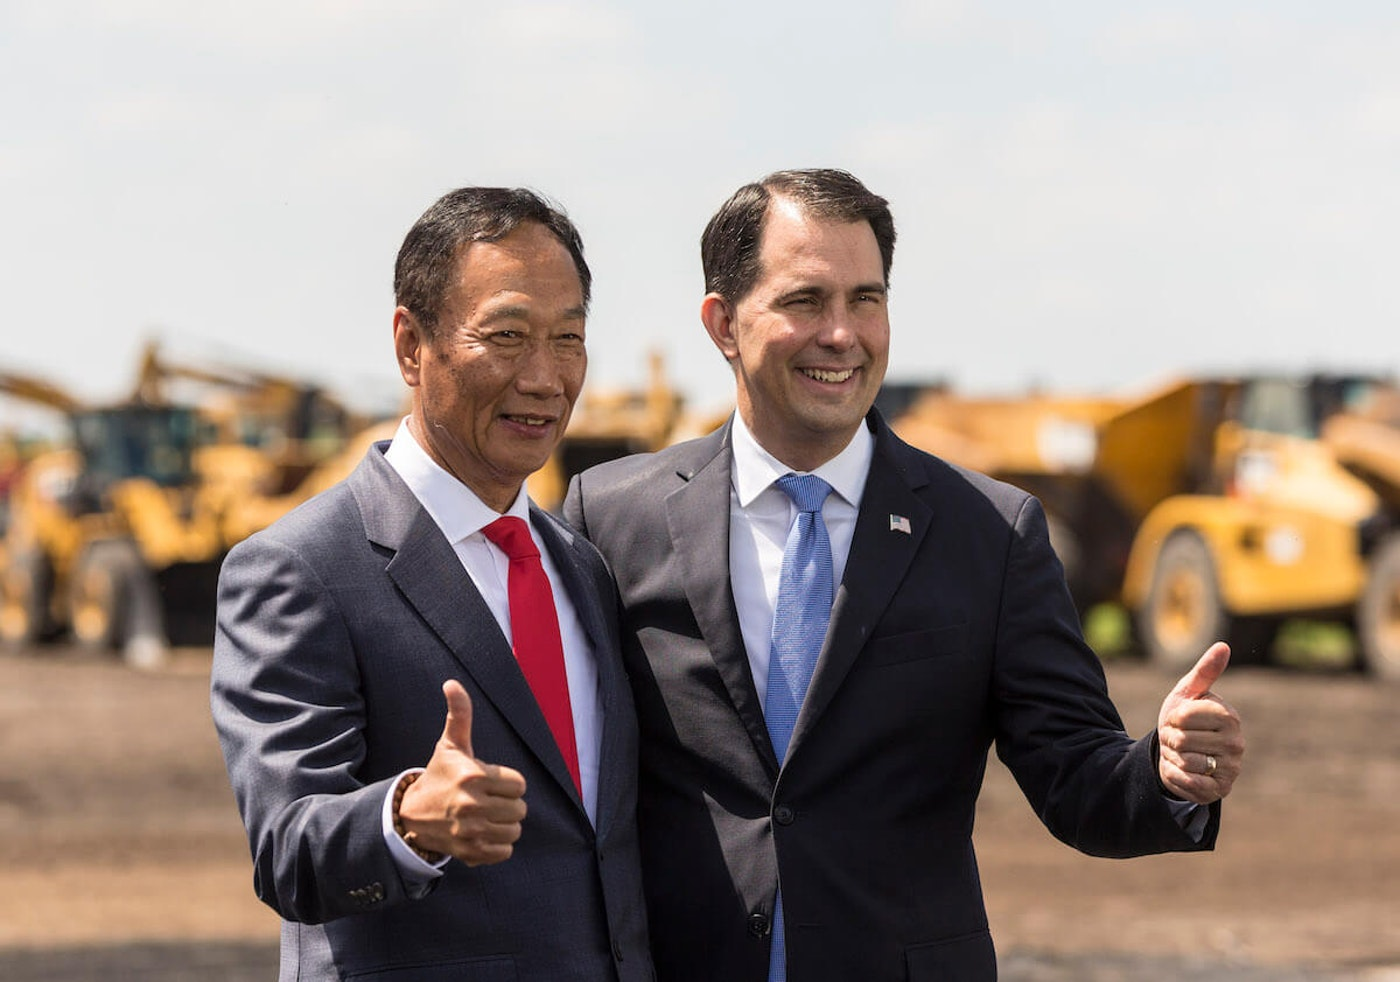 Foxconn CEO Terry Gou and former Gov. Scott Walker pose for photos before the groundbreaking of the Foxconn Technology Group computer screen plant on June 28, 2018, in Mount Pleasant. President Donald Trump also attended the event. Foxconn had committed to building a $10 billion plant and creating 13,000 Wisconsin jobs. Two years later, neither has happened. (Photo by Andy Manis/Getty Images)